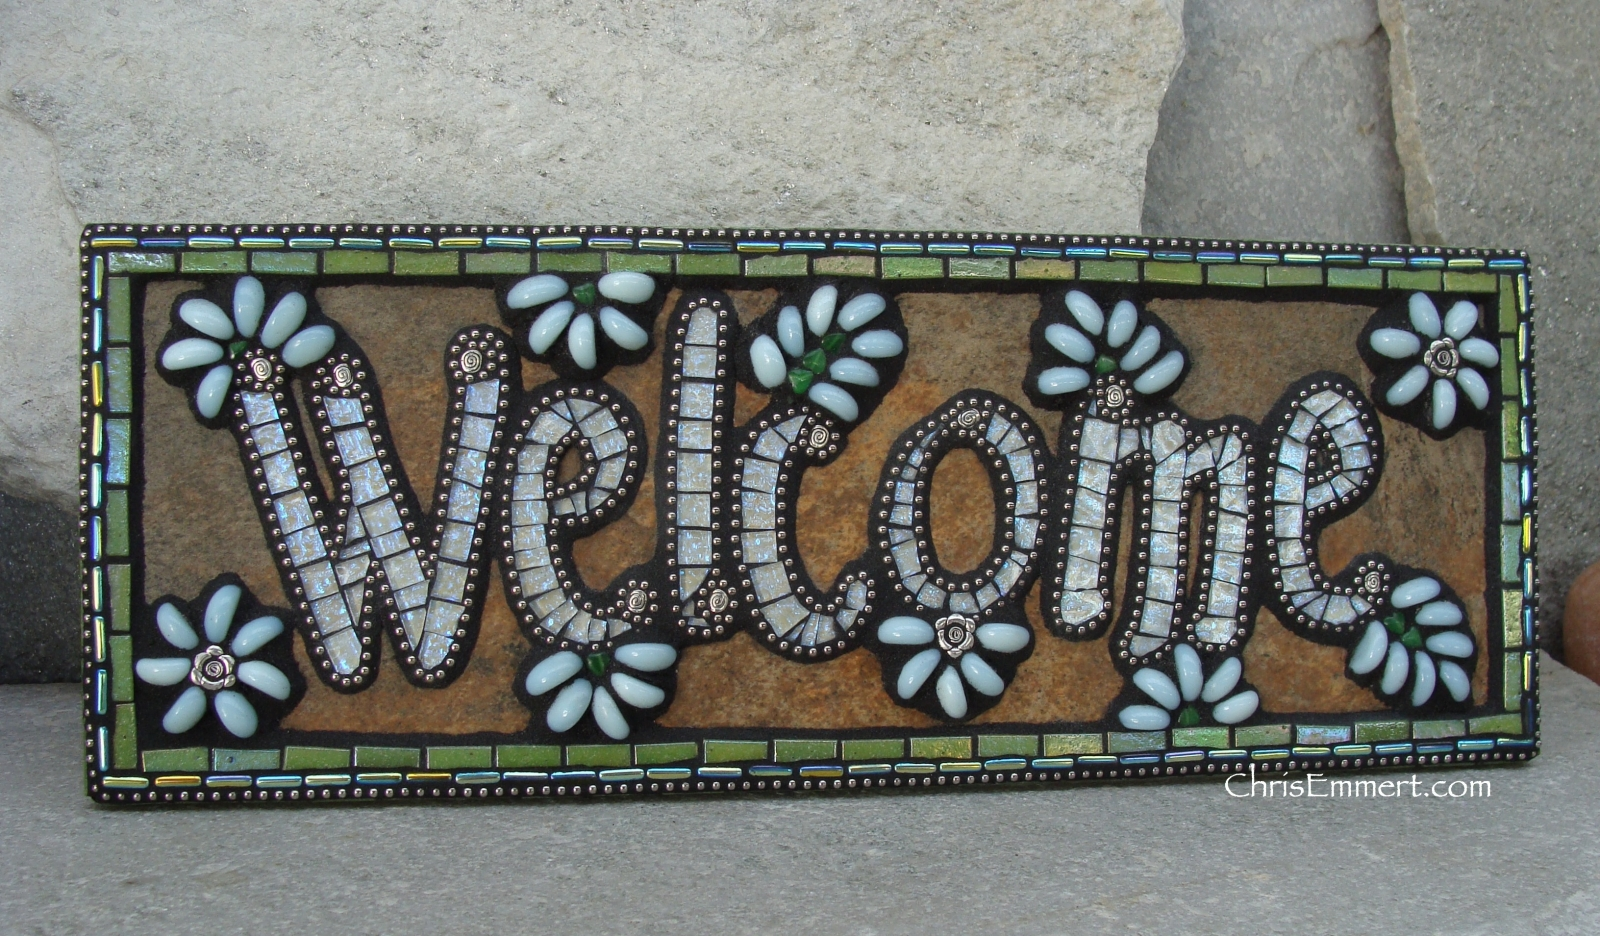 Mosaic Welcome Sign  Chris Emmert Mosaic & Design. Culinary Schools In New York City. System Performance Monitoring. Veterinary Technician Schools In Virginia. What Is The Best Laptop In The World. Mount Horeb Telephone Company. Incontinence After Robotic Prostatectomy. Pre Approval Process For Buying A Home. Executive Suites Minneapolis